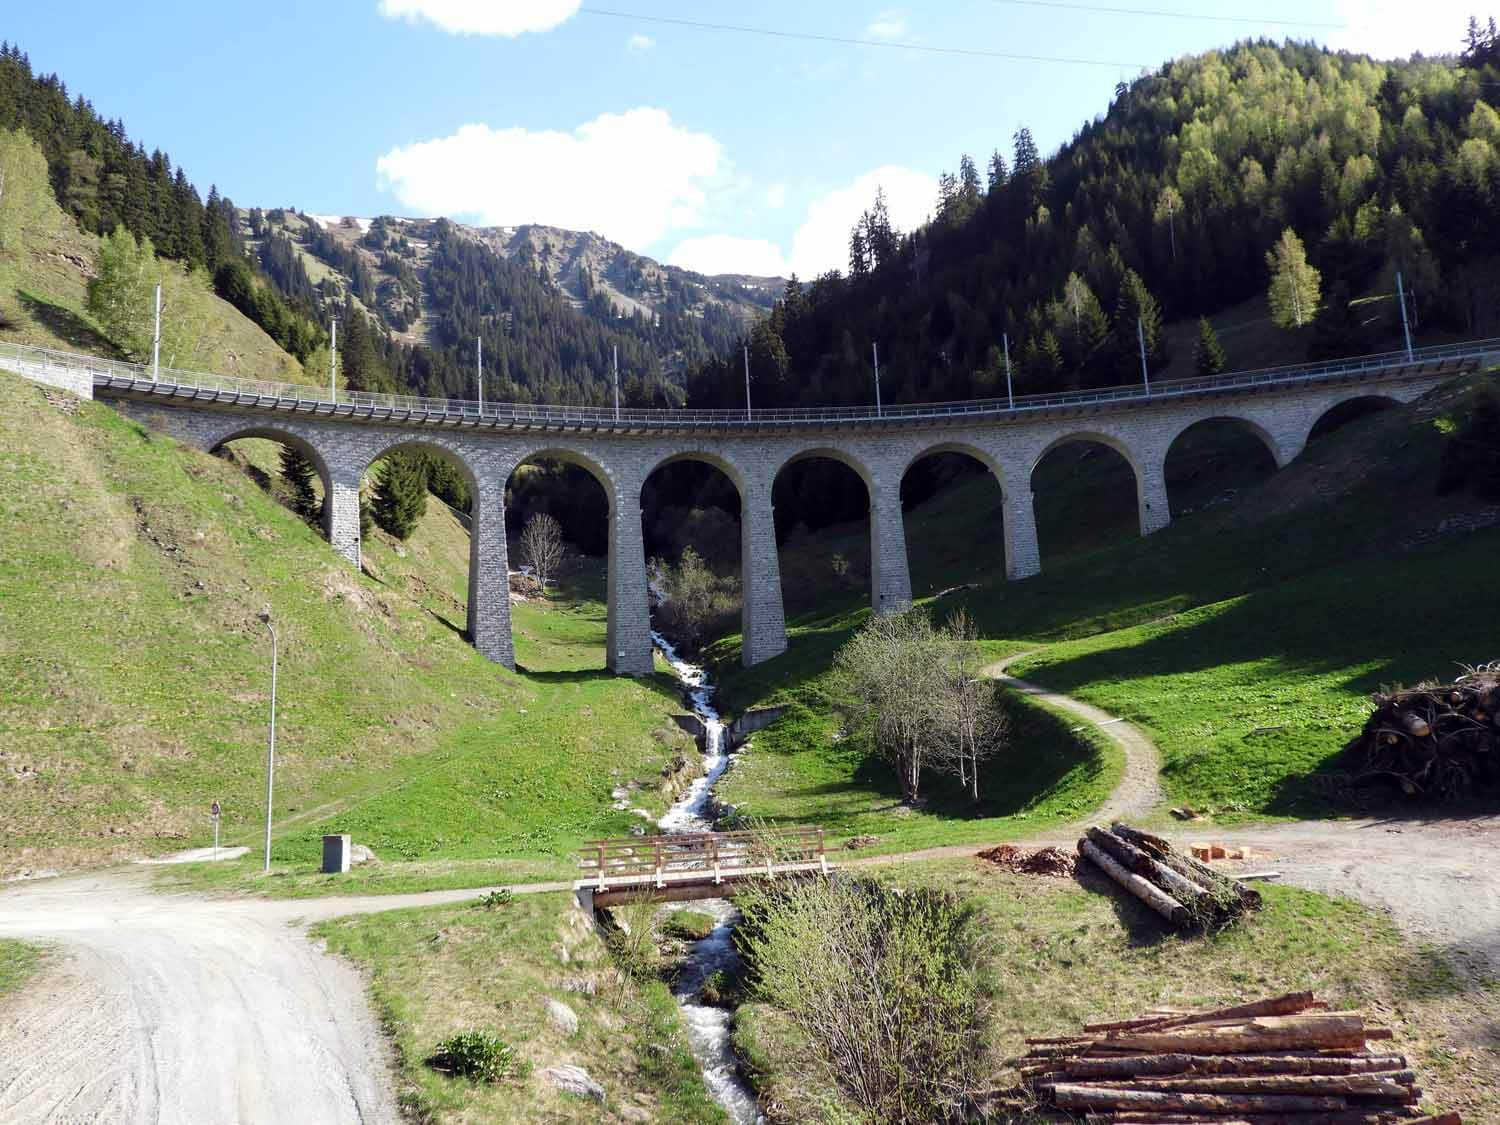 switzerland-oberalppass-vorderrhein-river-valley-stone-train-bridge.JPG